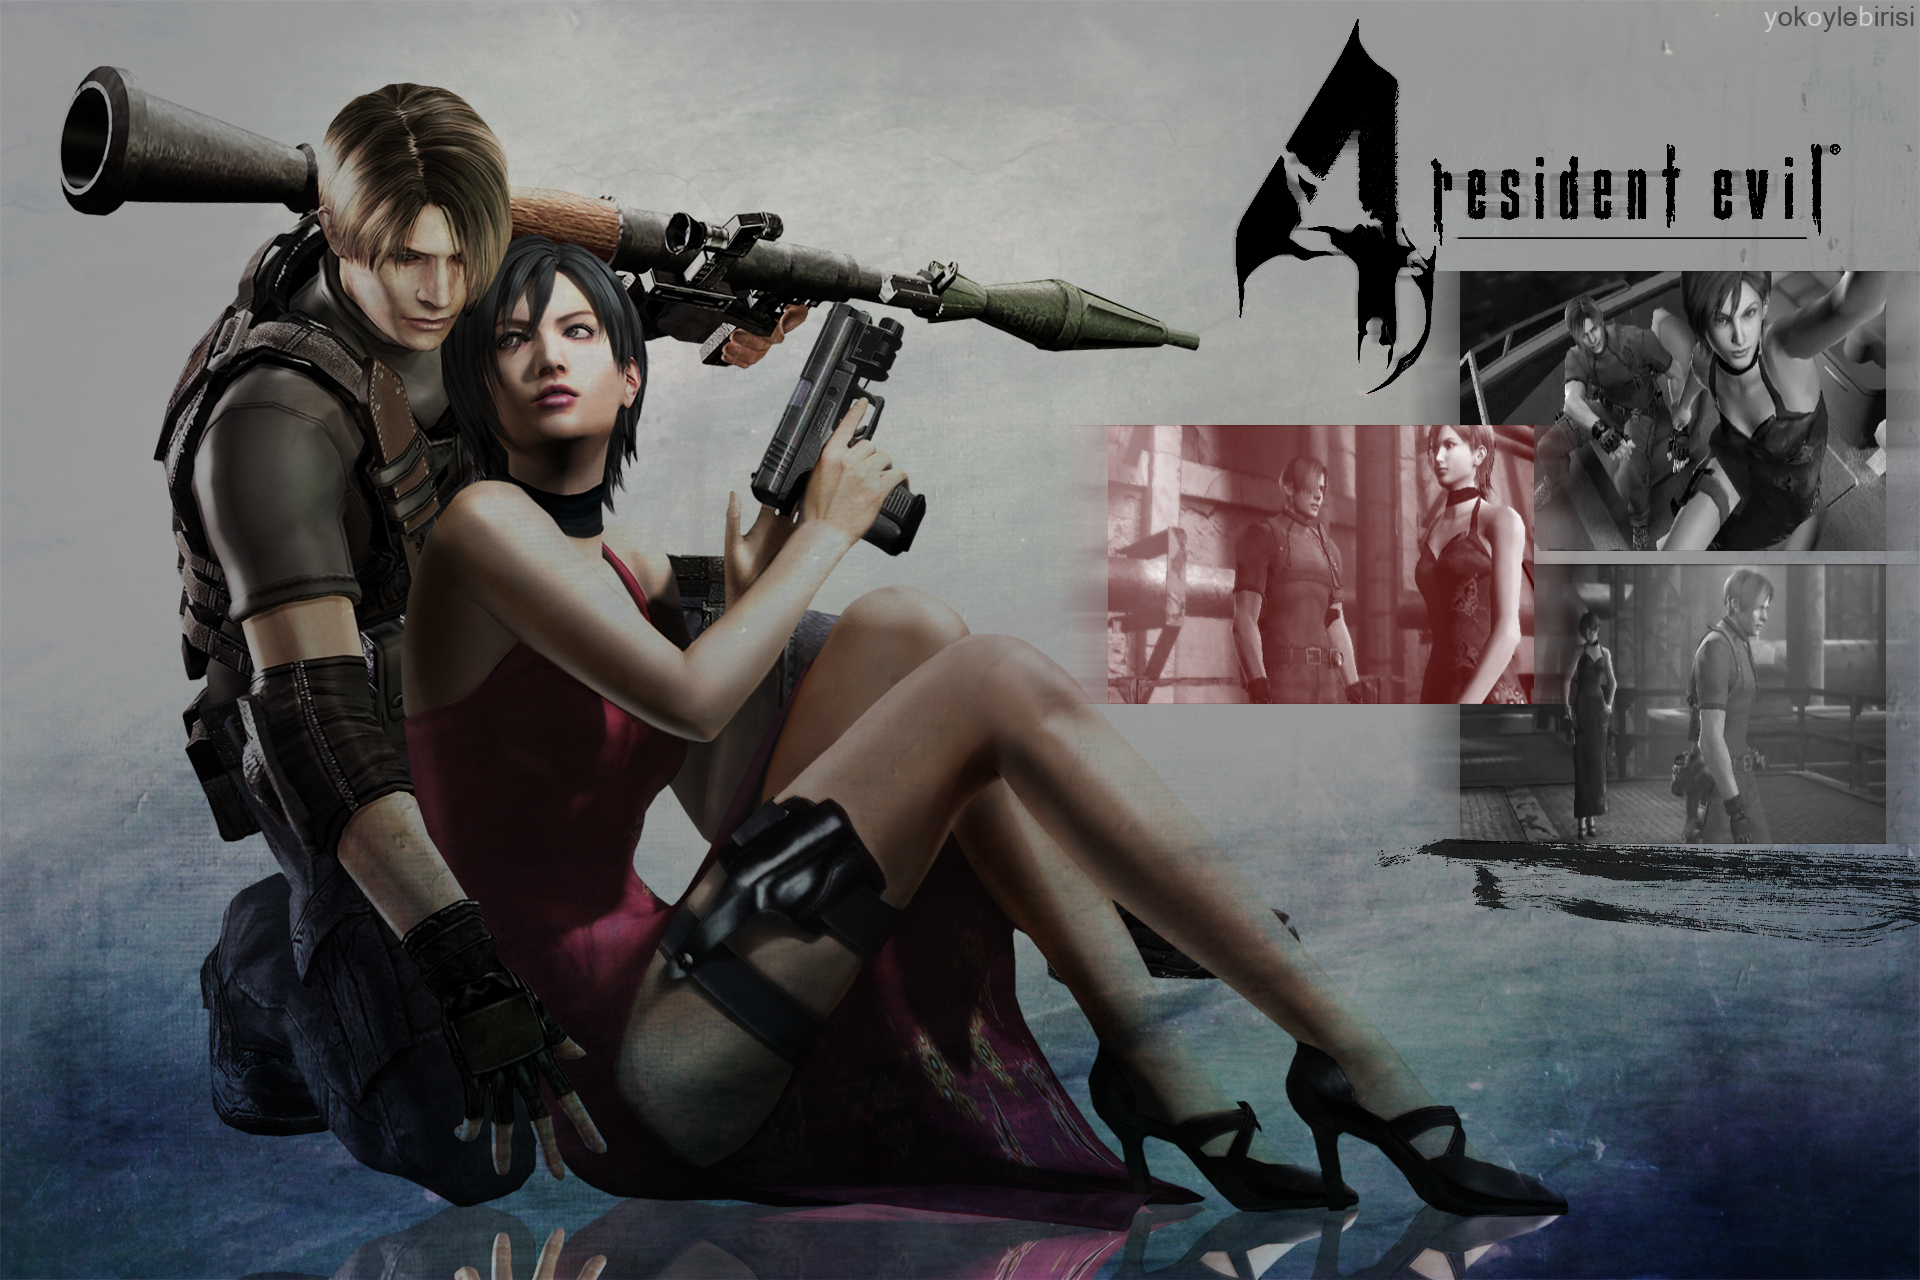 Resident Evil 4 Ada Leon Wallpaper 11 By Yokoylebirisi On Deviantart